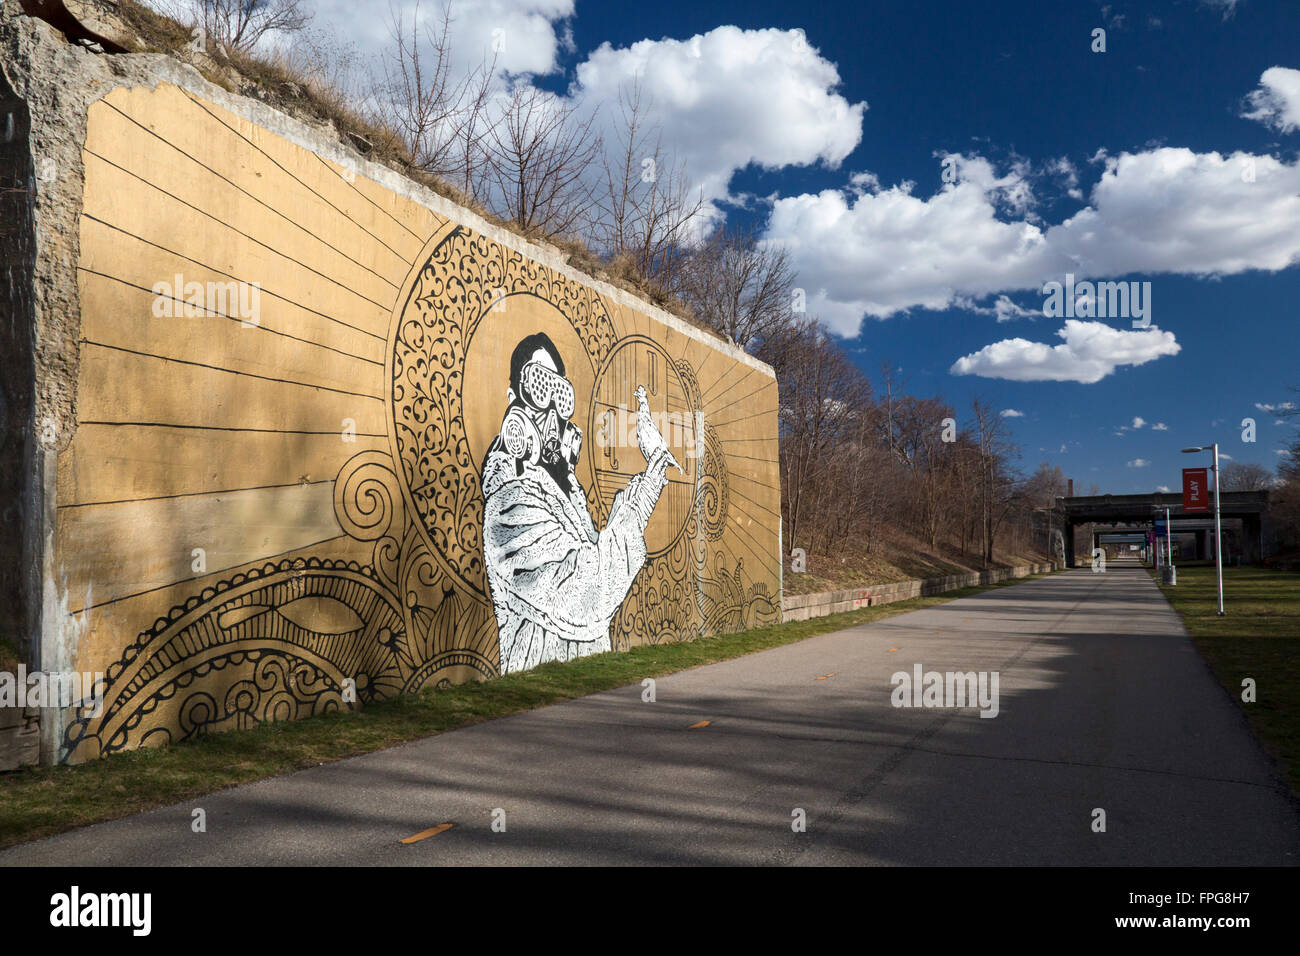 Detroit, Michigan - Artwork along the Dequindre Cut Greenway, a hiking/biking path which follows the route of a Stock Photo